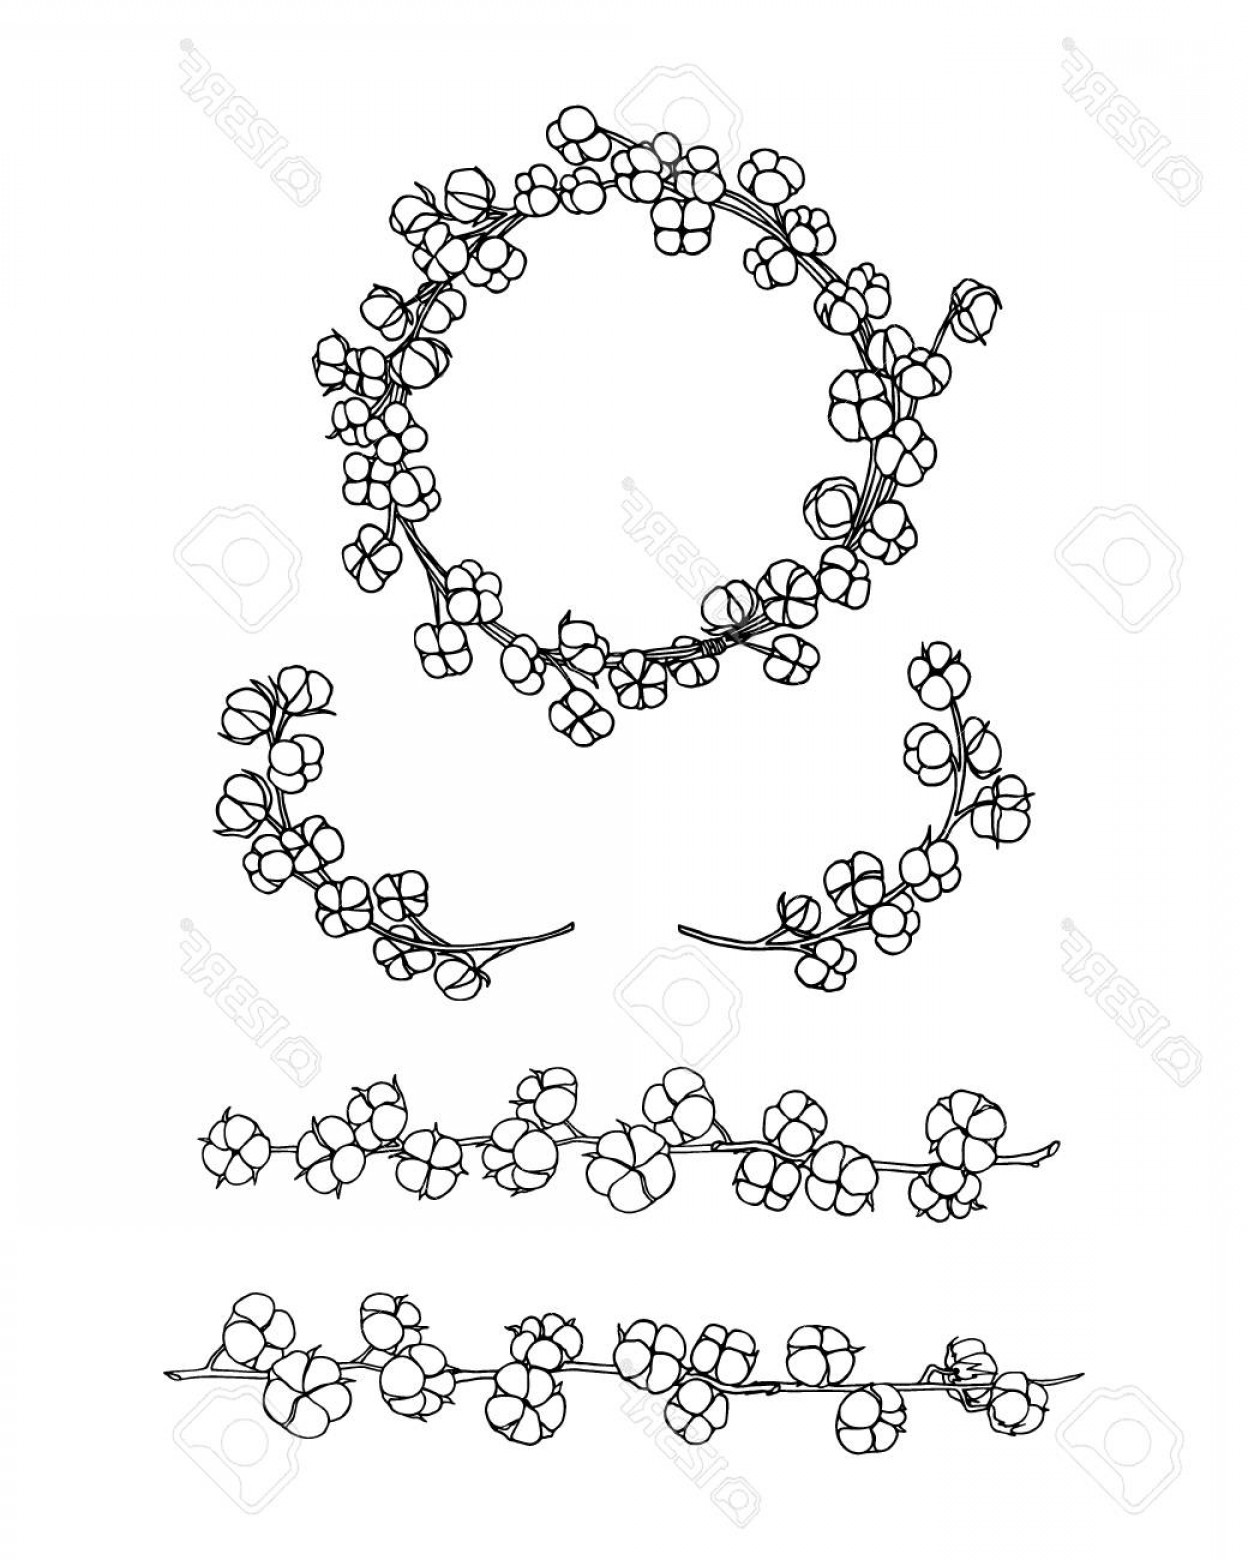 Cotton Vector Graphic: Photostock Vector Vector Graphic Set Of Wreath Laurel And Borders Of Cotton Flowers Beautiful Floral Design Elements I